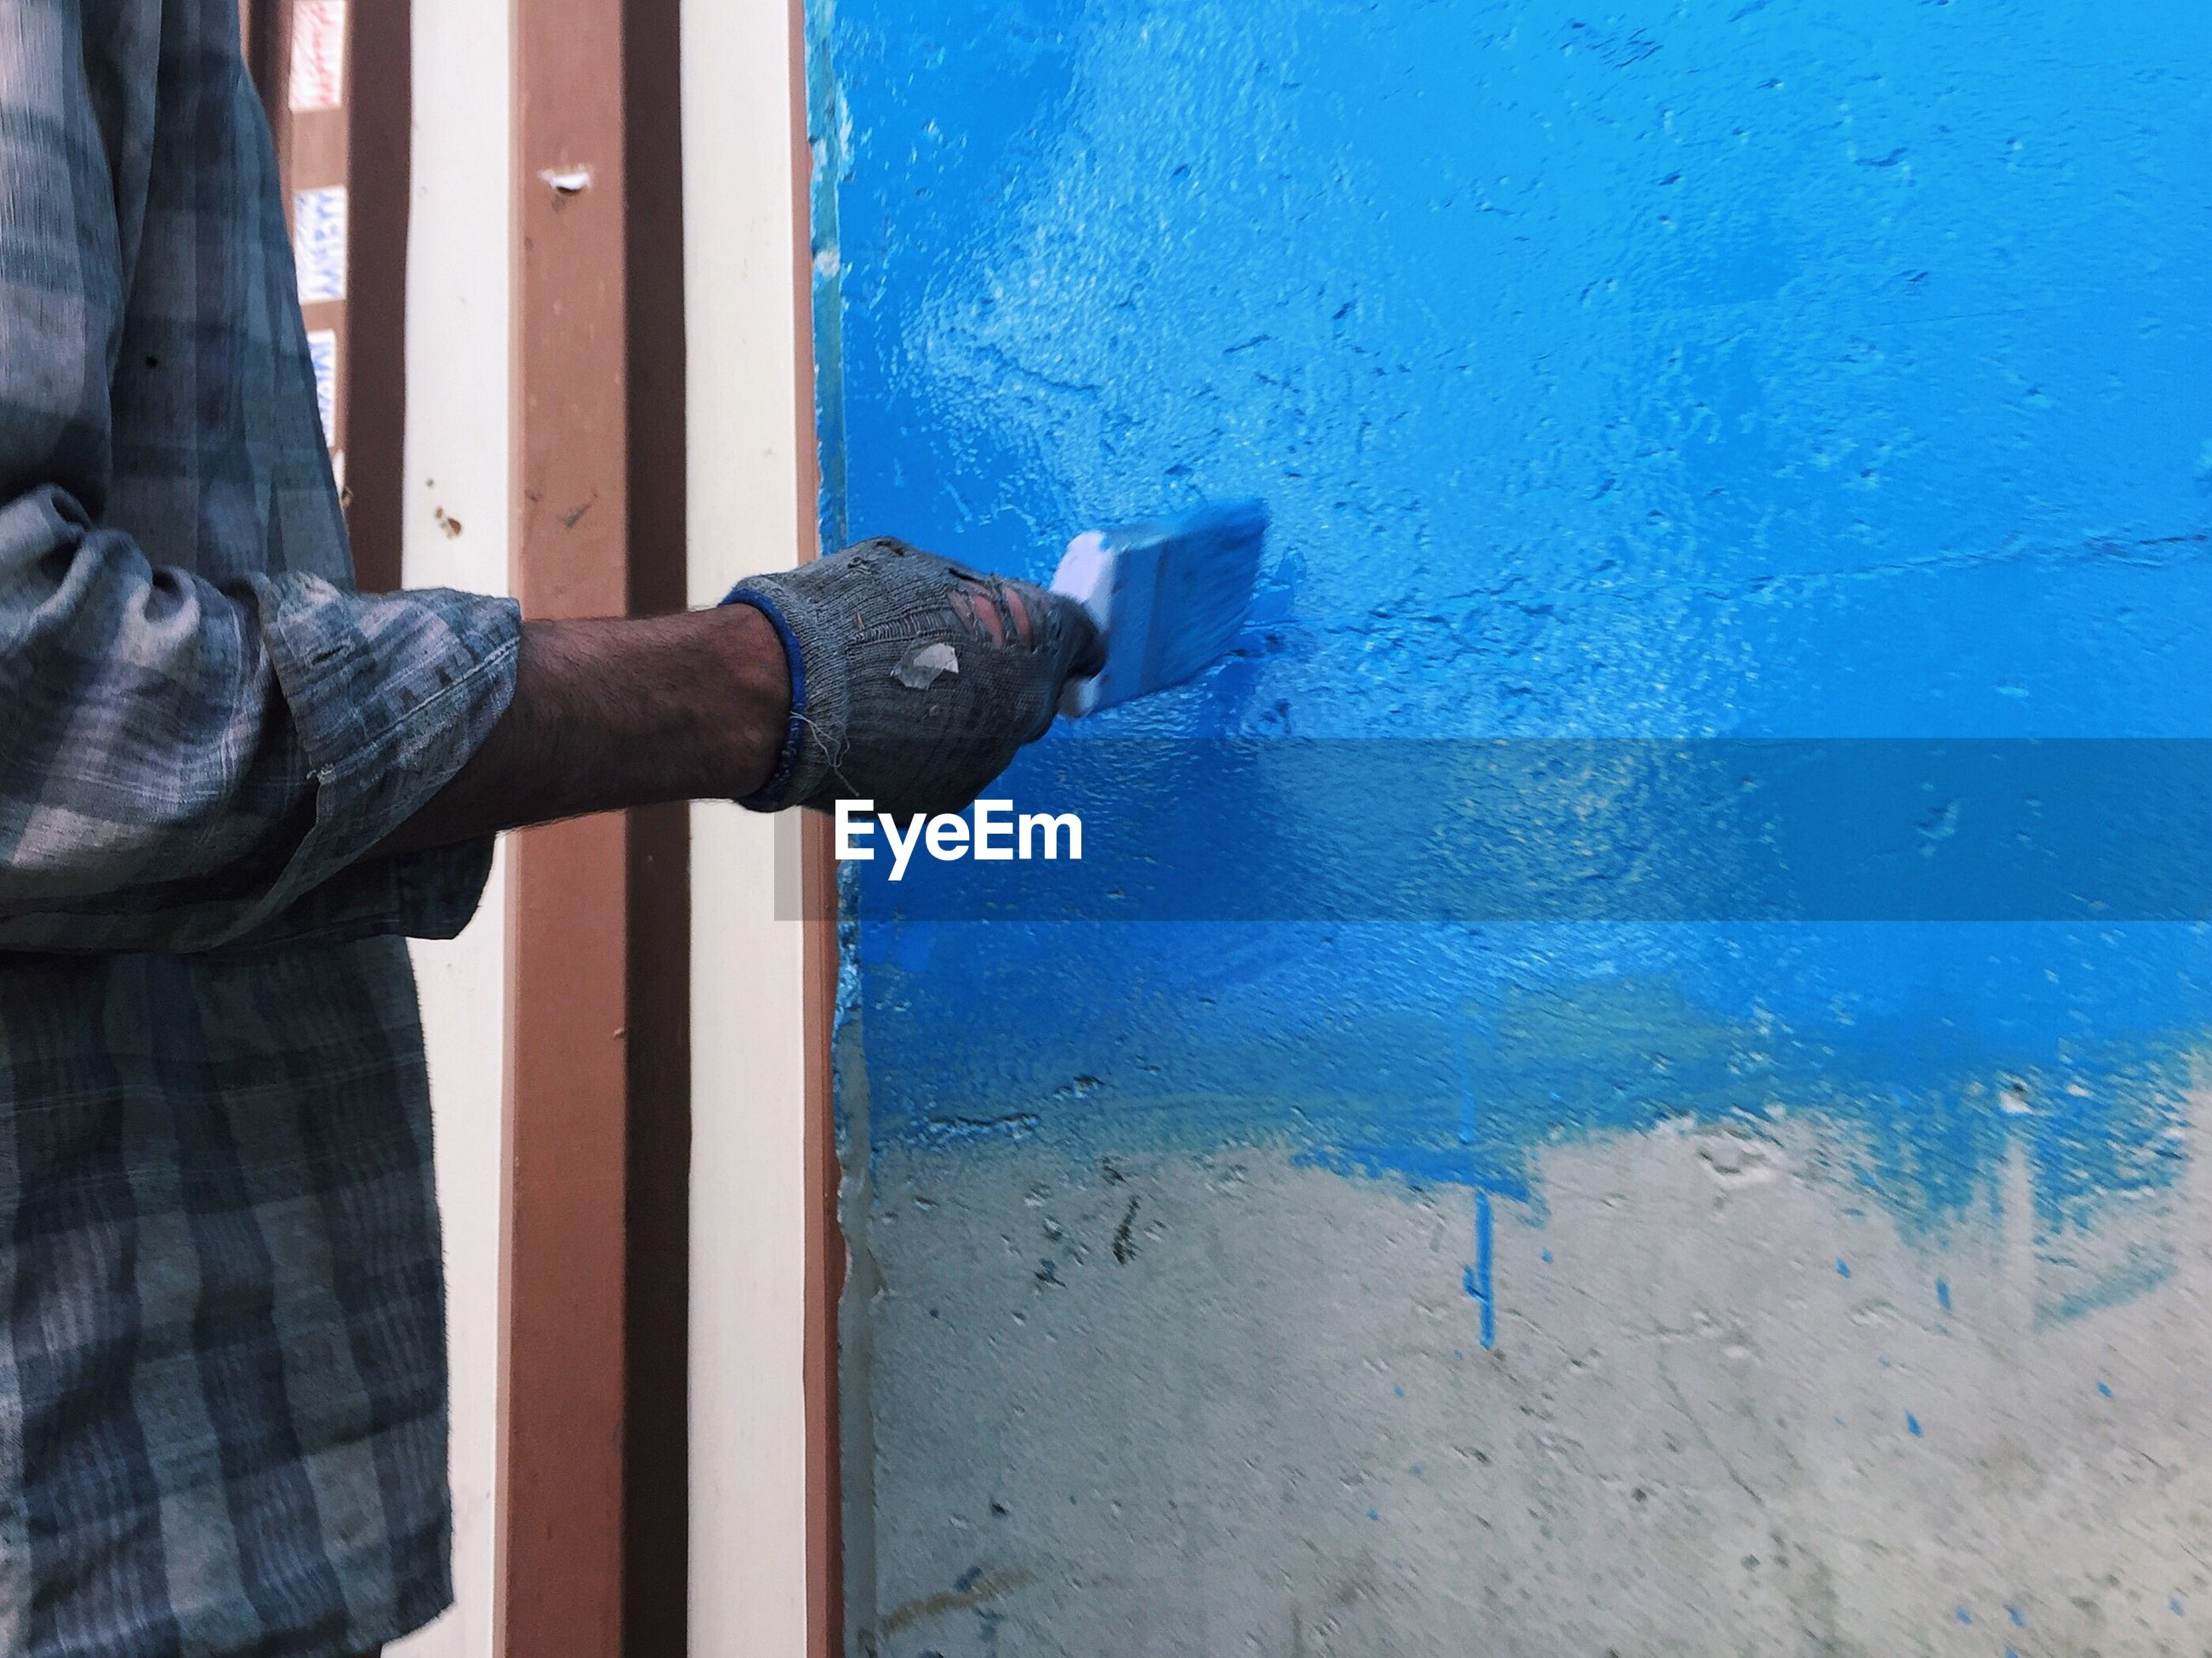 CLOSE-UP OF HUMAN HAND ON BLUE DOOR